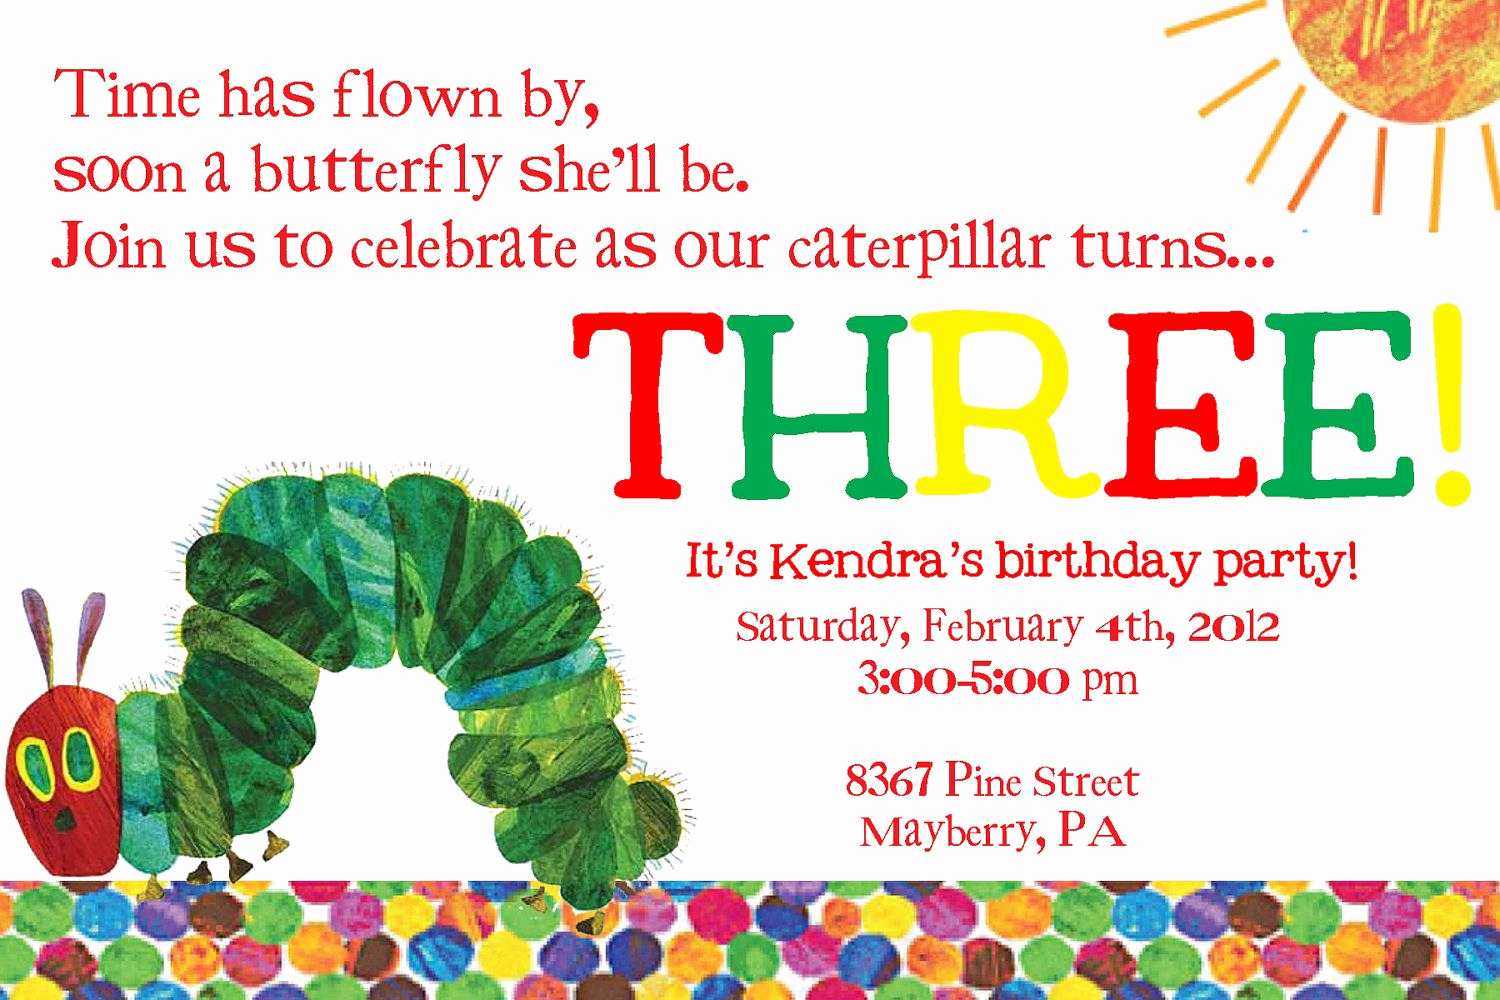 Hungry Caterpillar Invitation Template Best Of Very Hungry Caterpillar Third Birthday Invitation $12 00